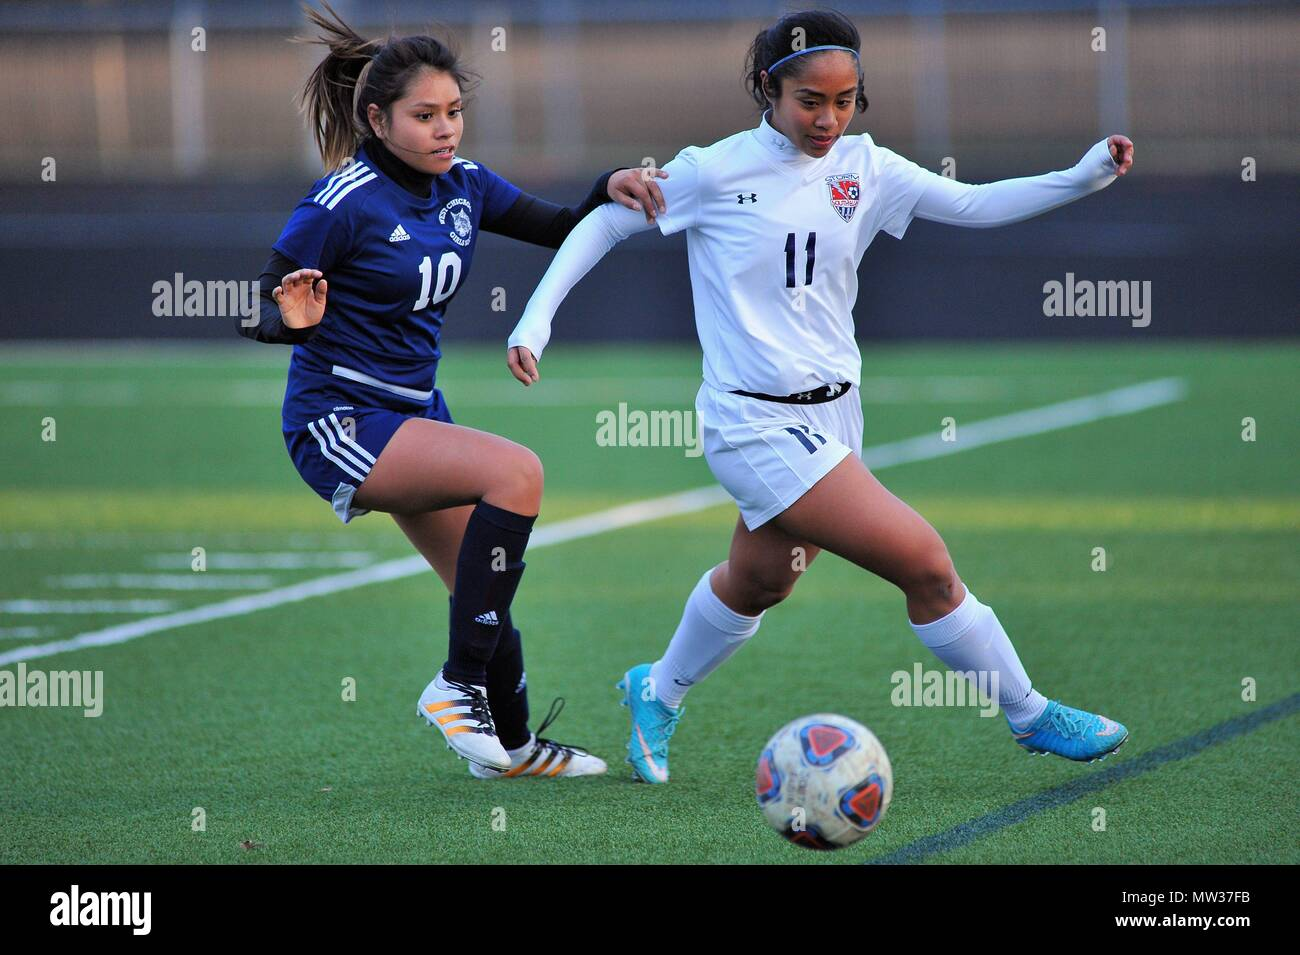 Players battling for possession of the ball along a sideline. USA. - Stock Image